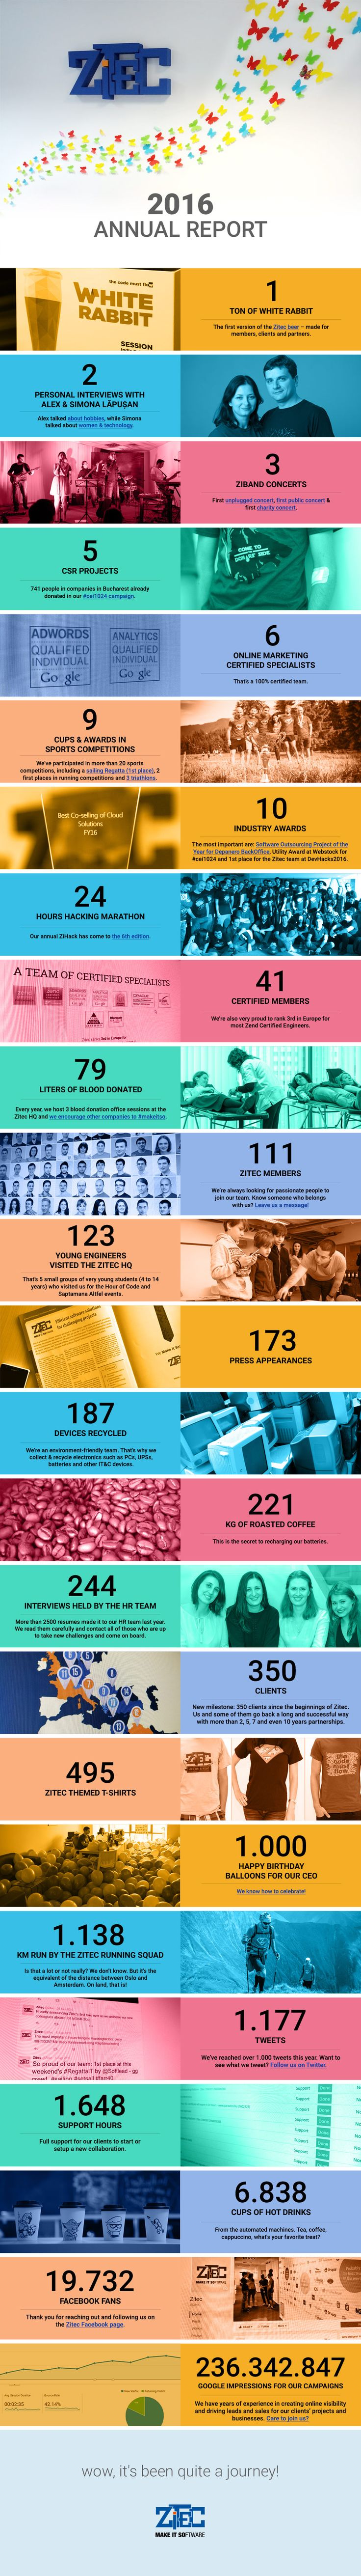 Looking back over the last 12 months, we've put all the numbers together and marked the most important facts about us, only to give you an idea about the wonderful journey that we've experienced as the Zitec team. We're very proud to present to you this cool infographic. We'll let the numbers tell you the […]